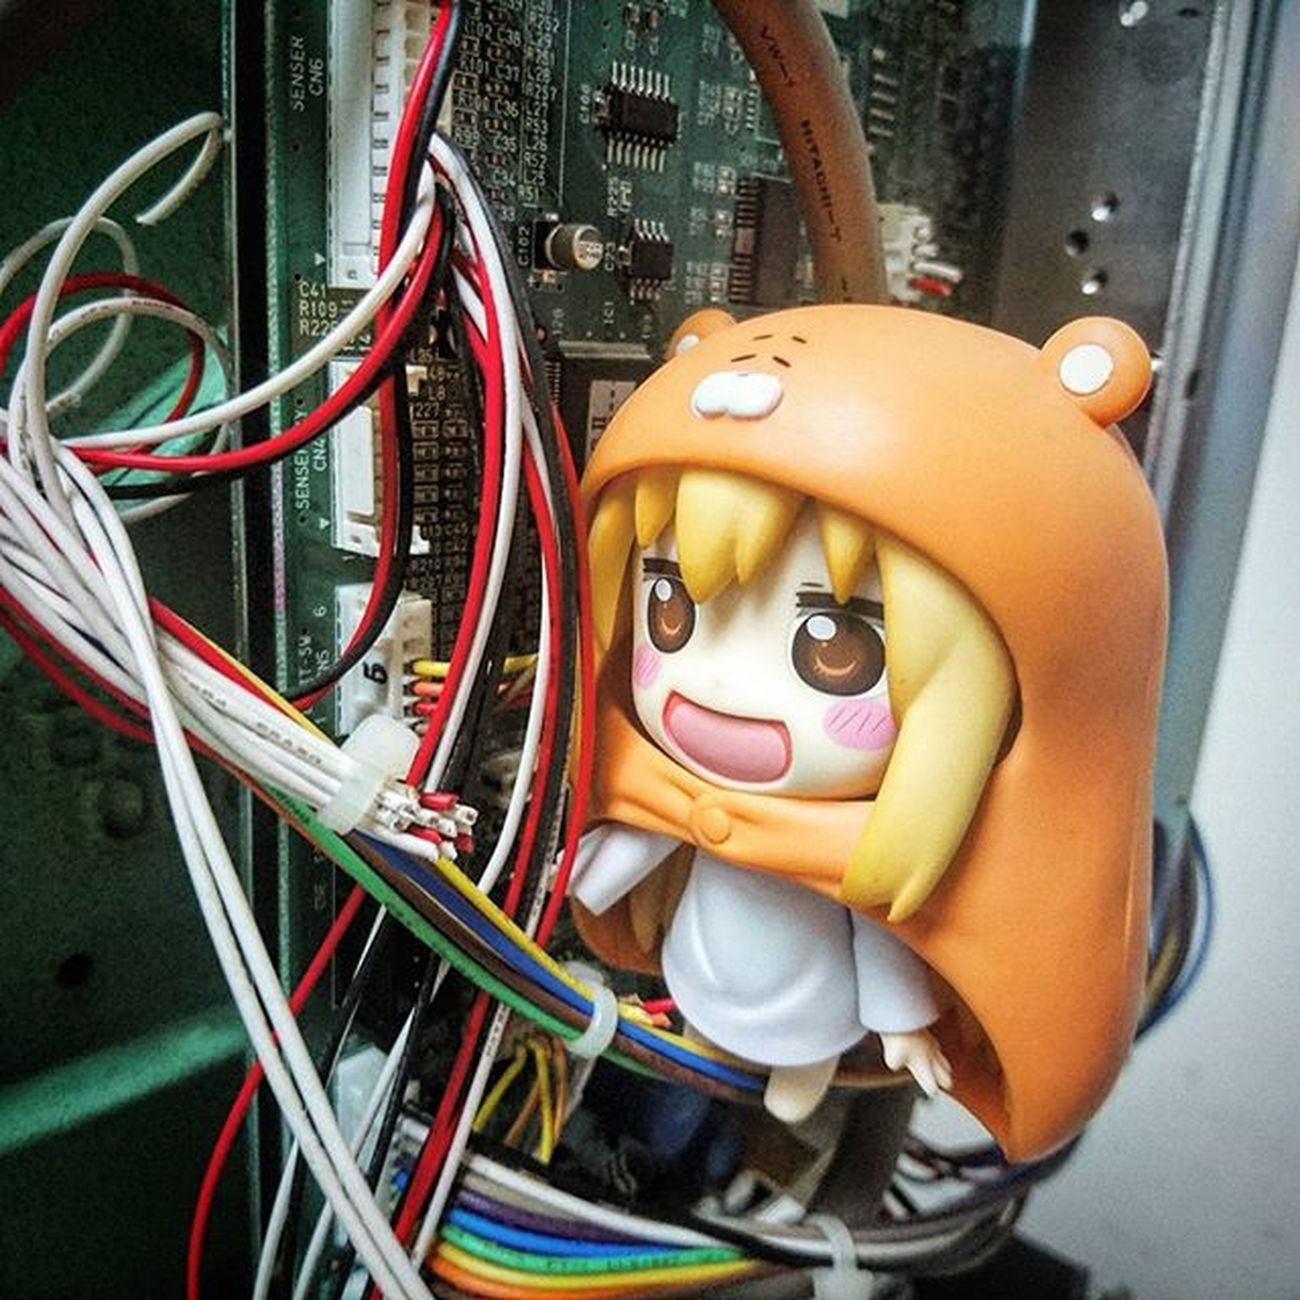 Me:Ha!! Caught you red handed!!! You're trying to gnaw the cables huh!! Umaru Umaruchan Nendoplanet Himoutoumaruchan Nendoworks Nendoworld Nendography Figma Nendogram Nendoroid Nendoroids Nendophotographer Nendomalaysia Nendophotography Toyphotography Toyphotographers Toyphotographer Toyinstagram Toysnapshot Toymalaysia Toycommunity Toycommunities Xperia_knight